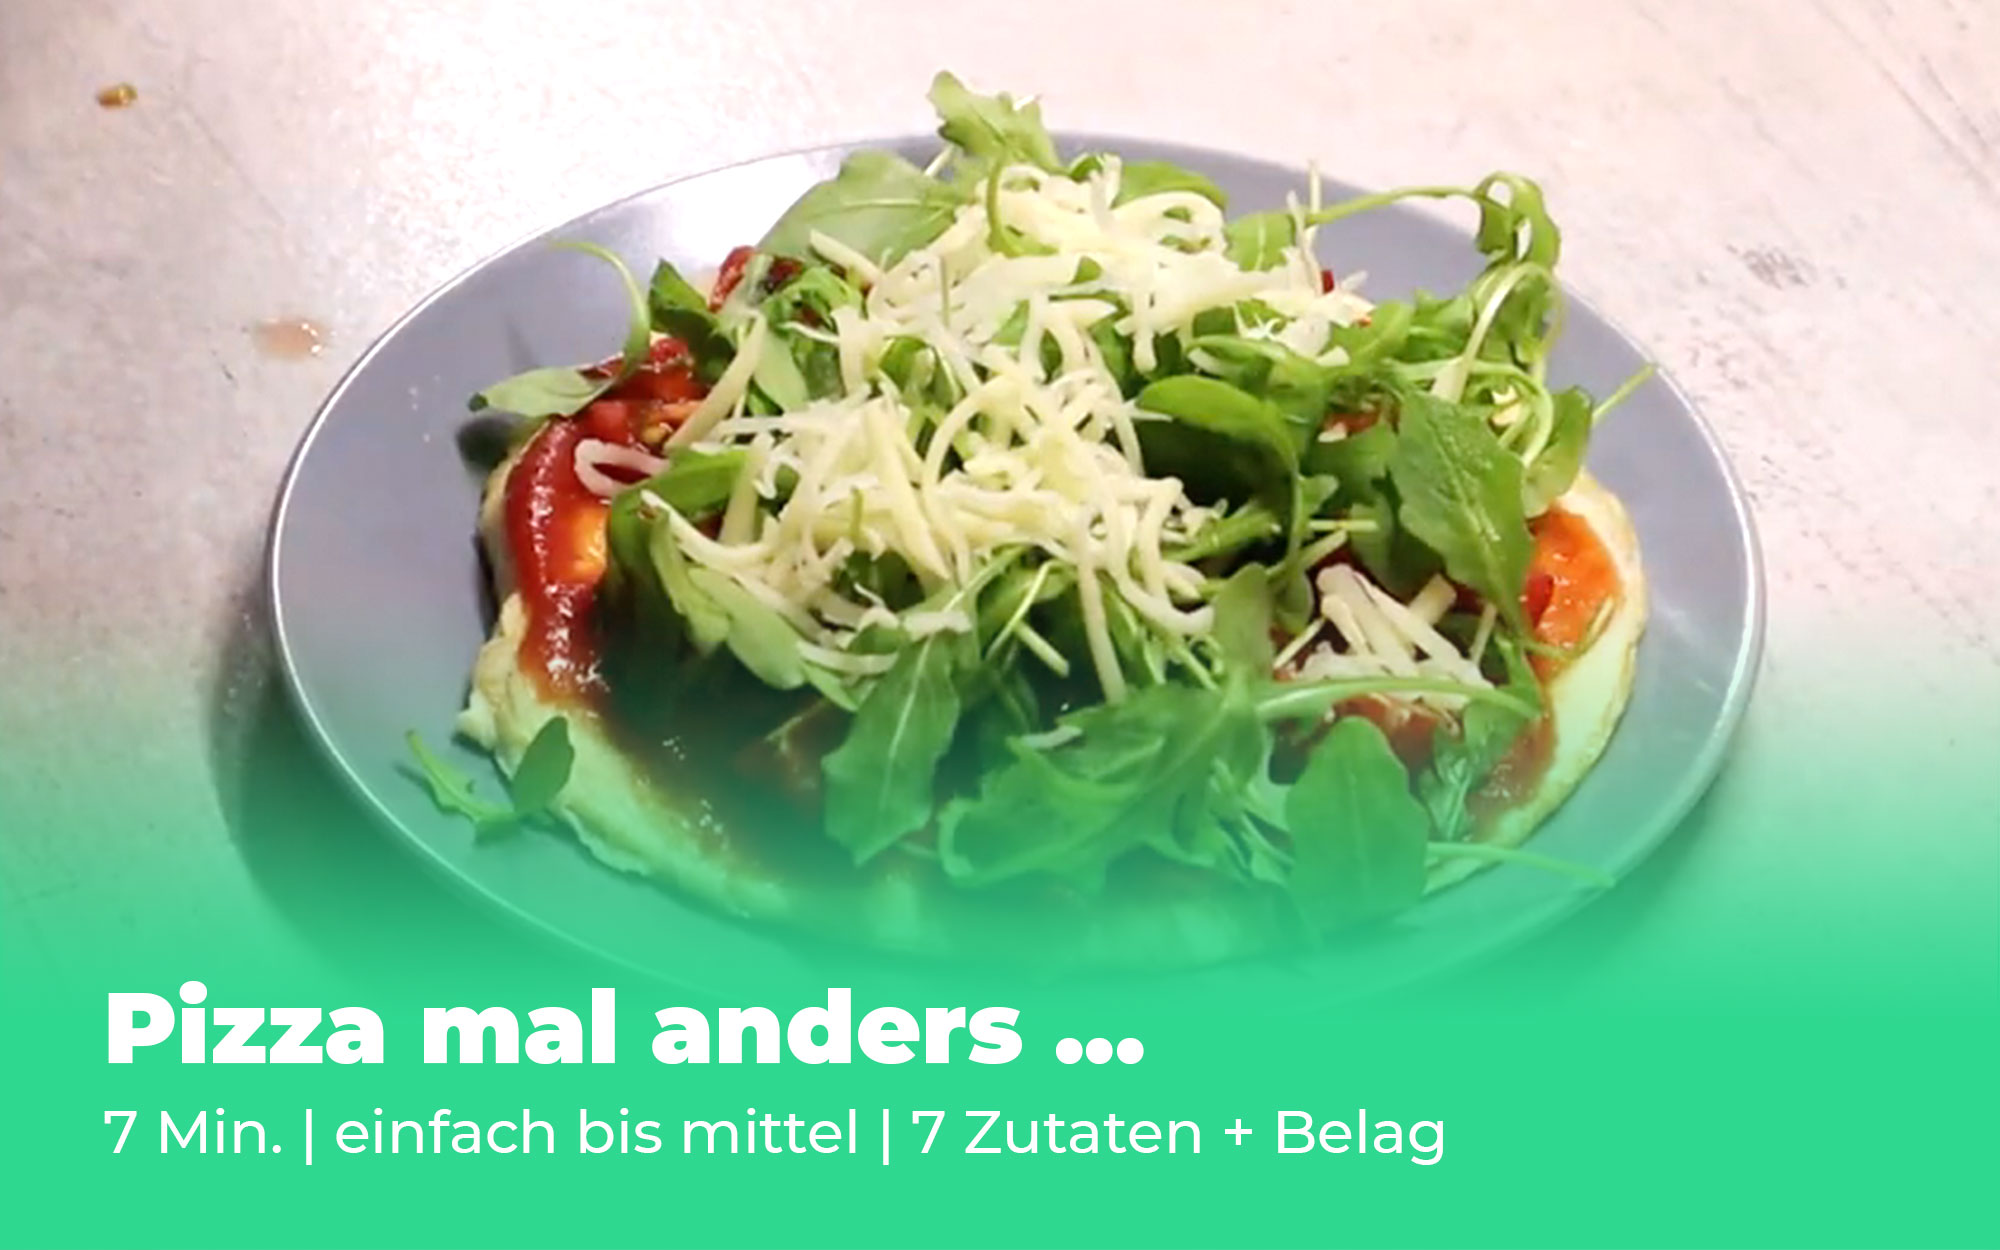 Fitness Food Pizza Sportfabrik Bonn